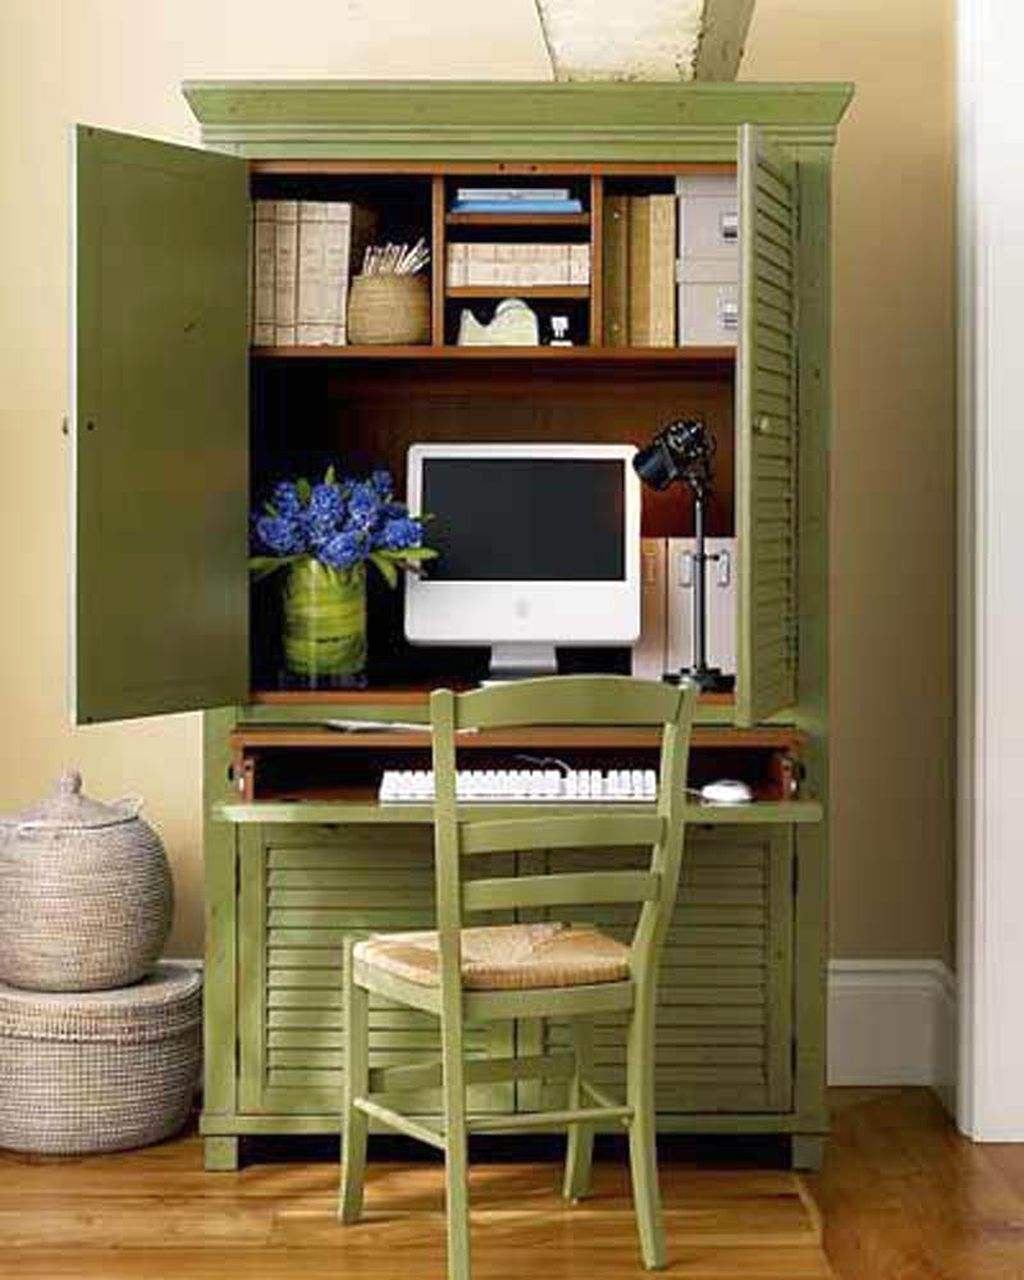 Green cupboard home office design ideas for small spaces Home design ideas for small spaces